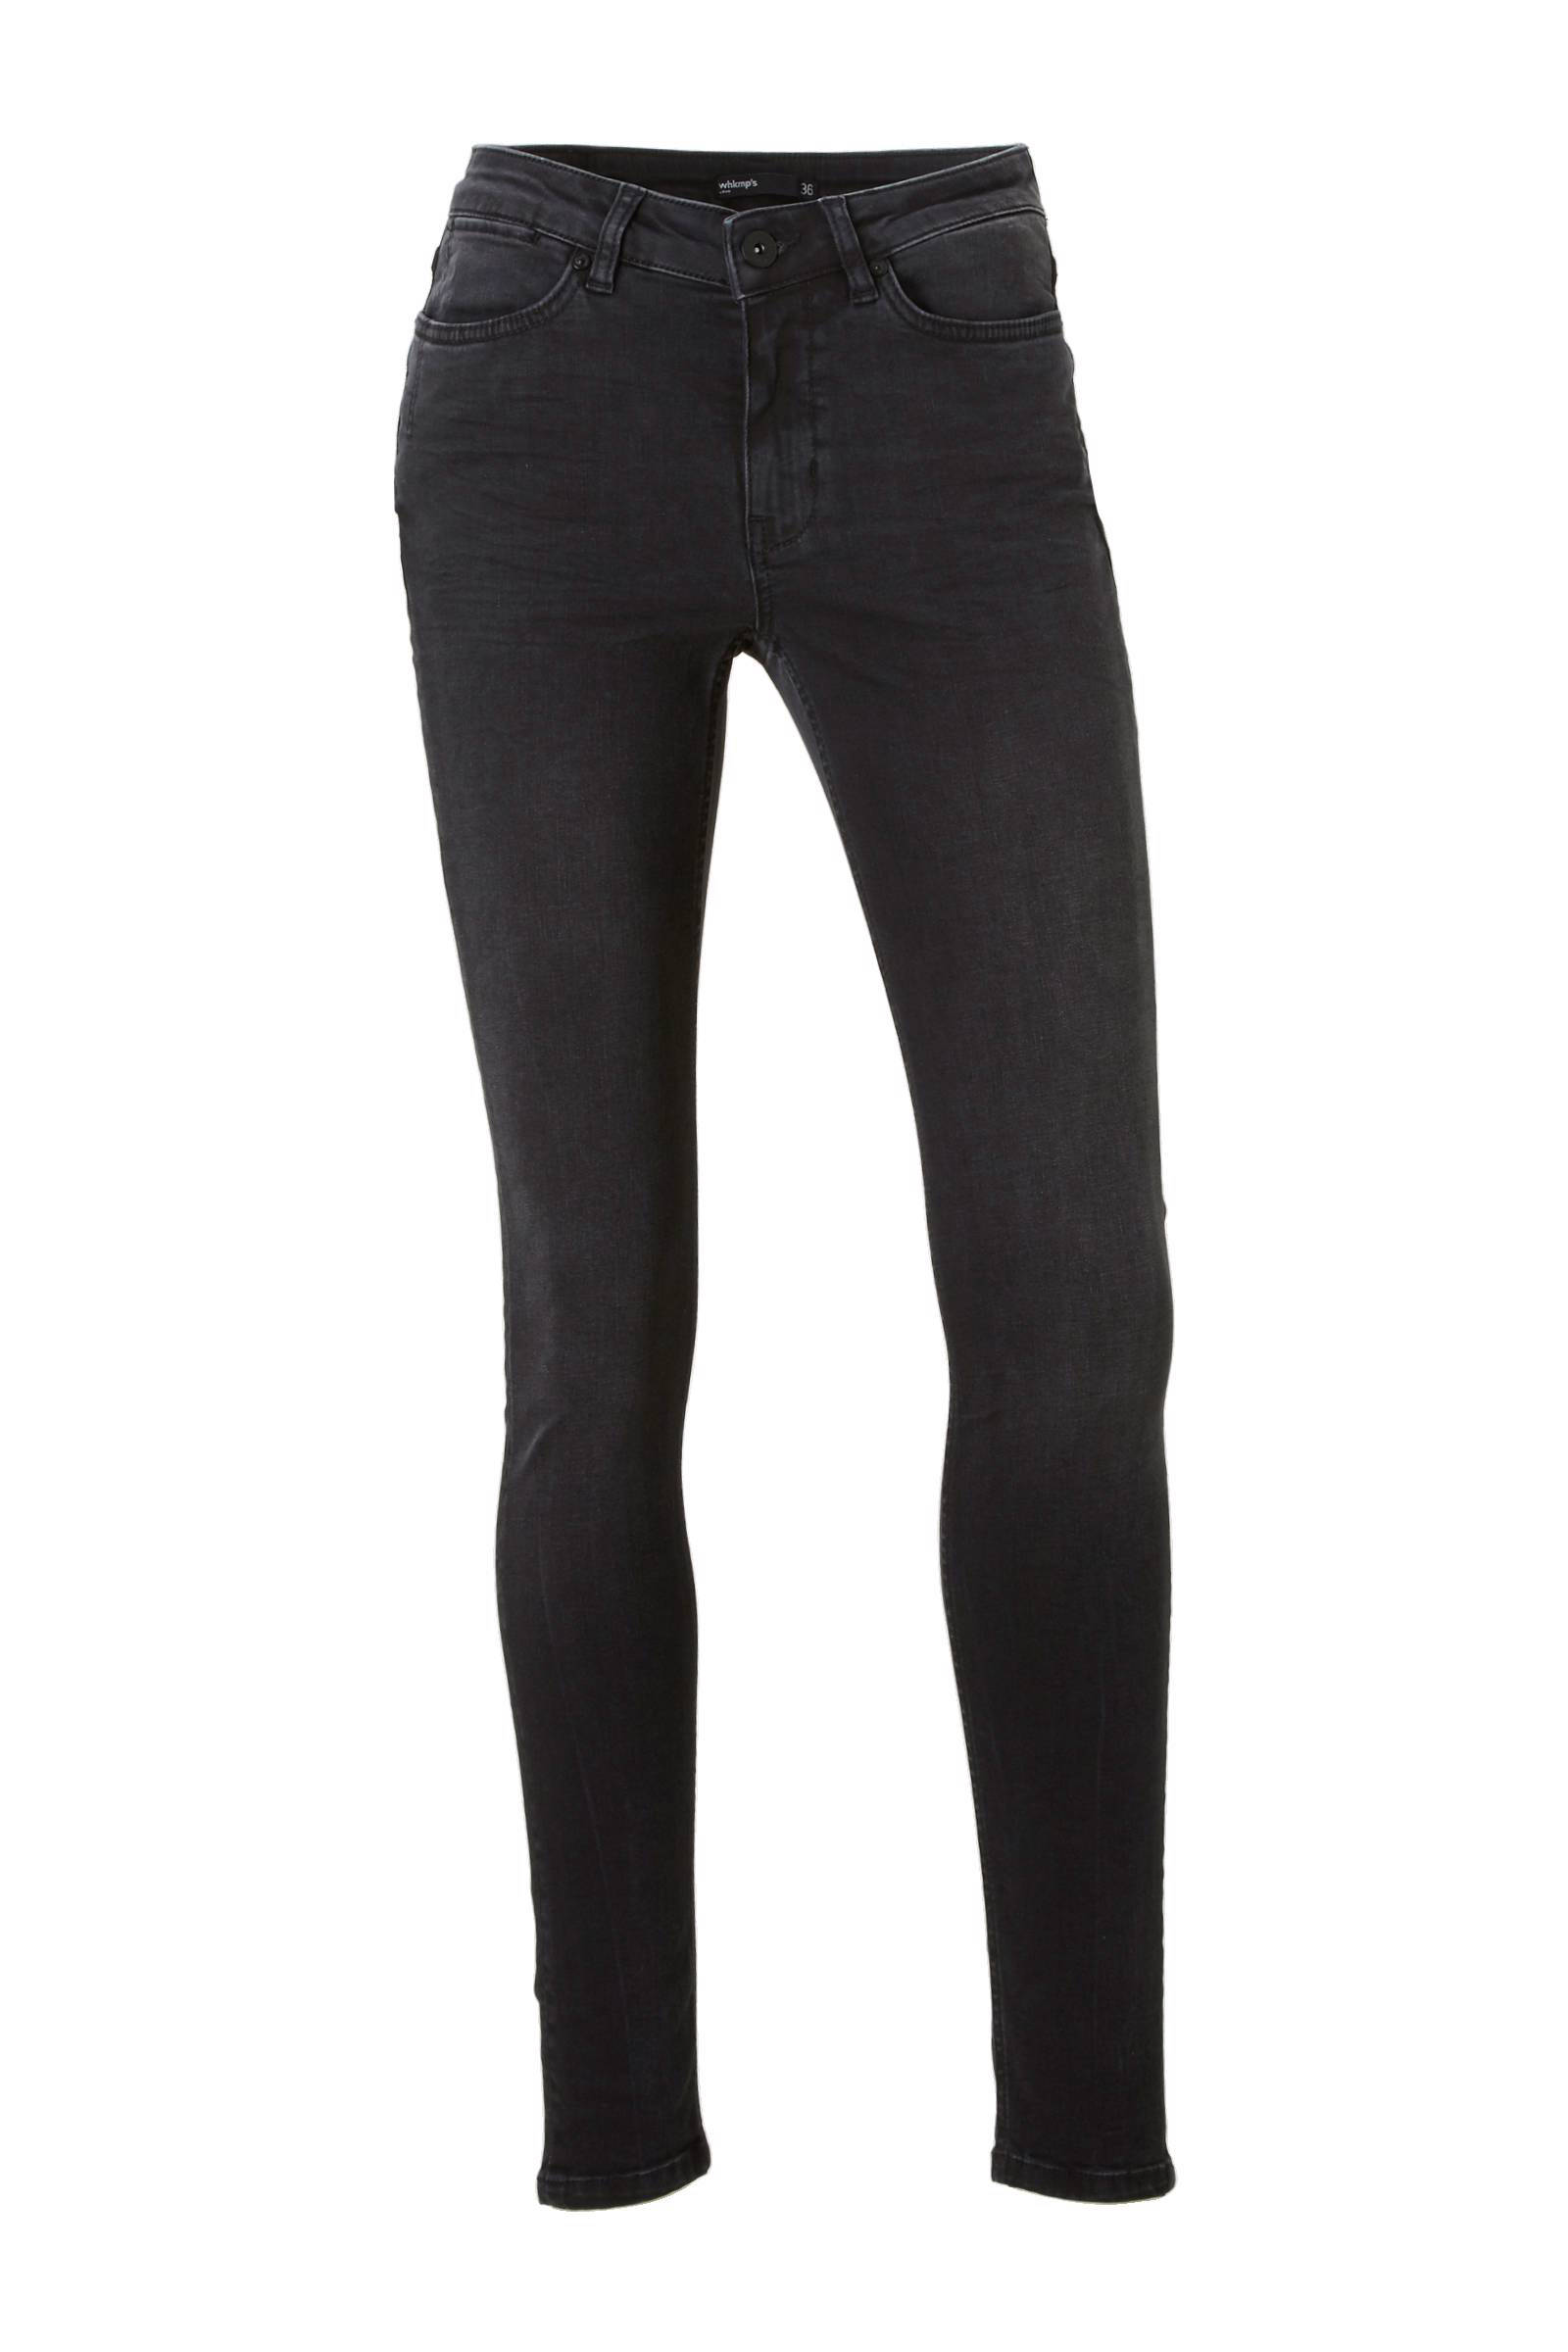 whkmp's own super comfort basic skinny denim (dames)